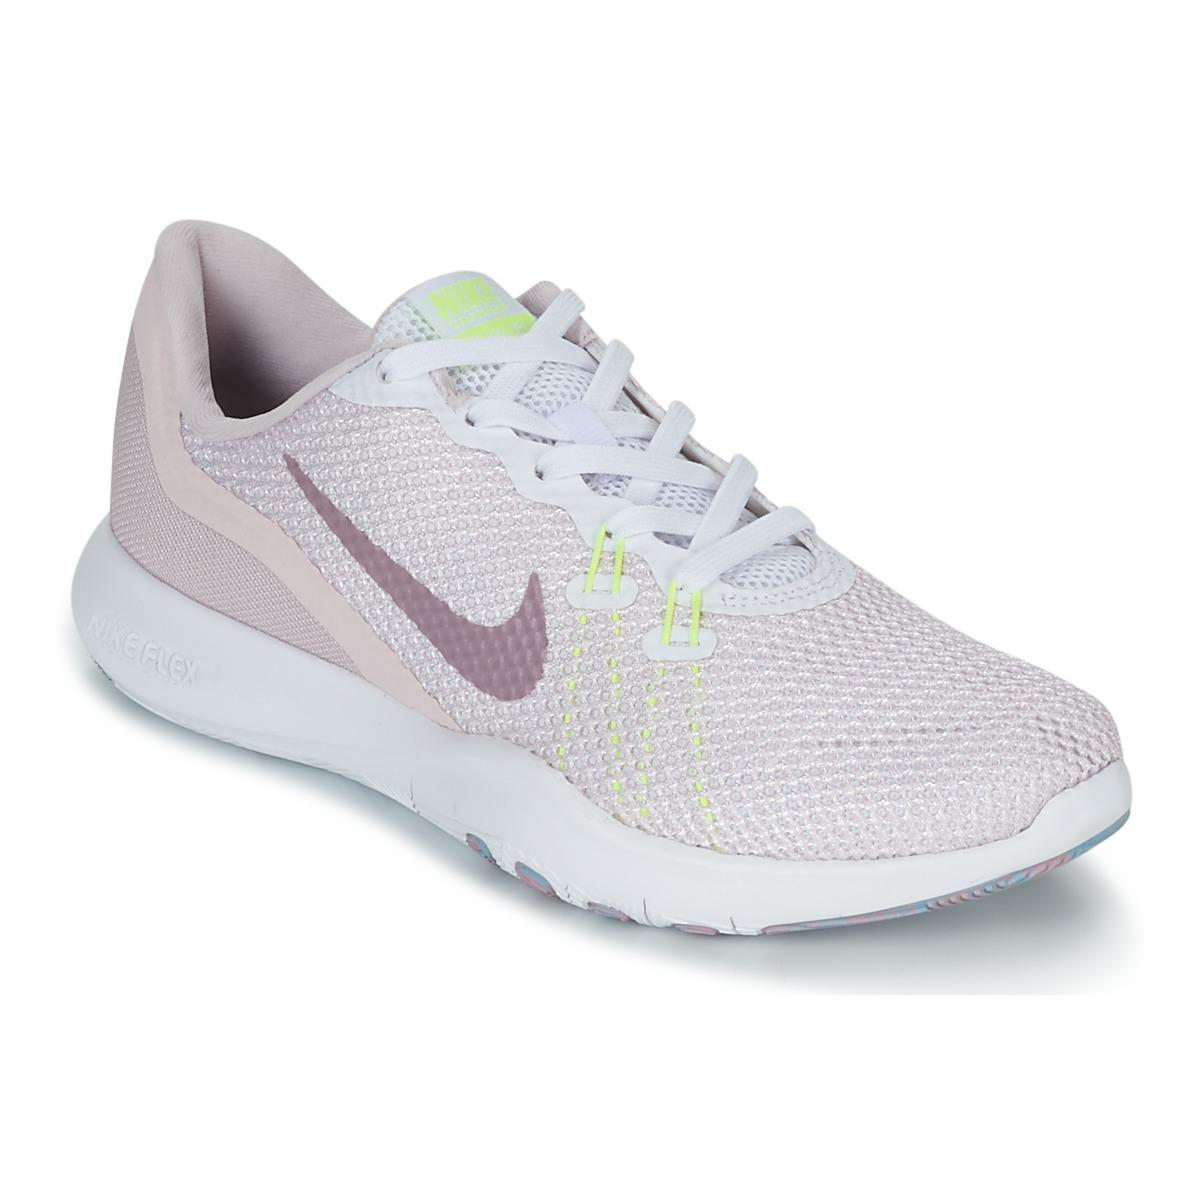 3109e2198196 Nike Flex Trainer 7 W Women s Trainers In Pink in Pink - Lyst